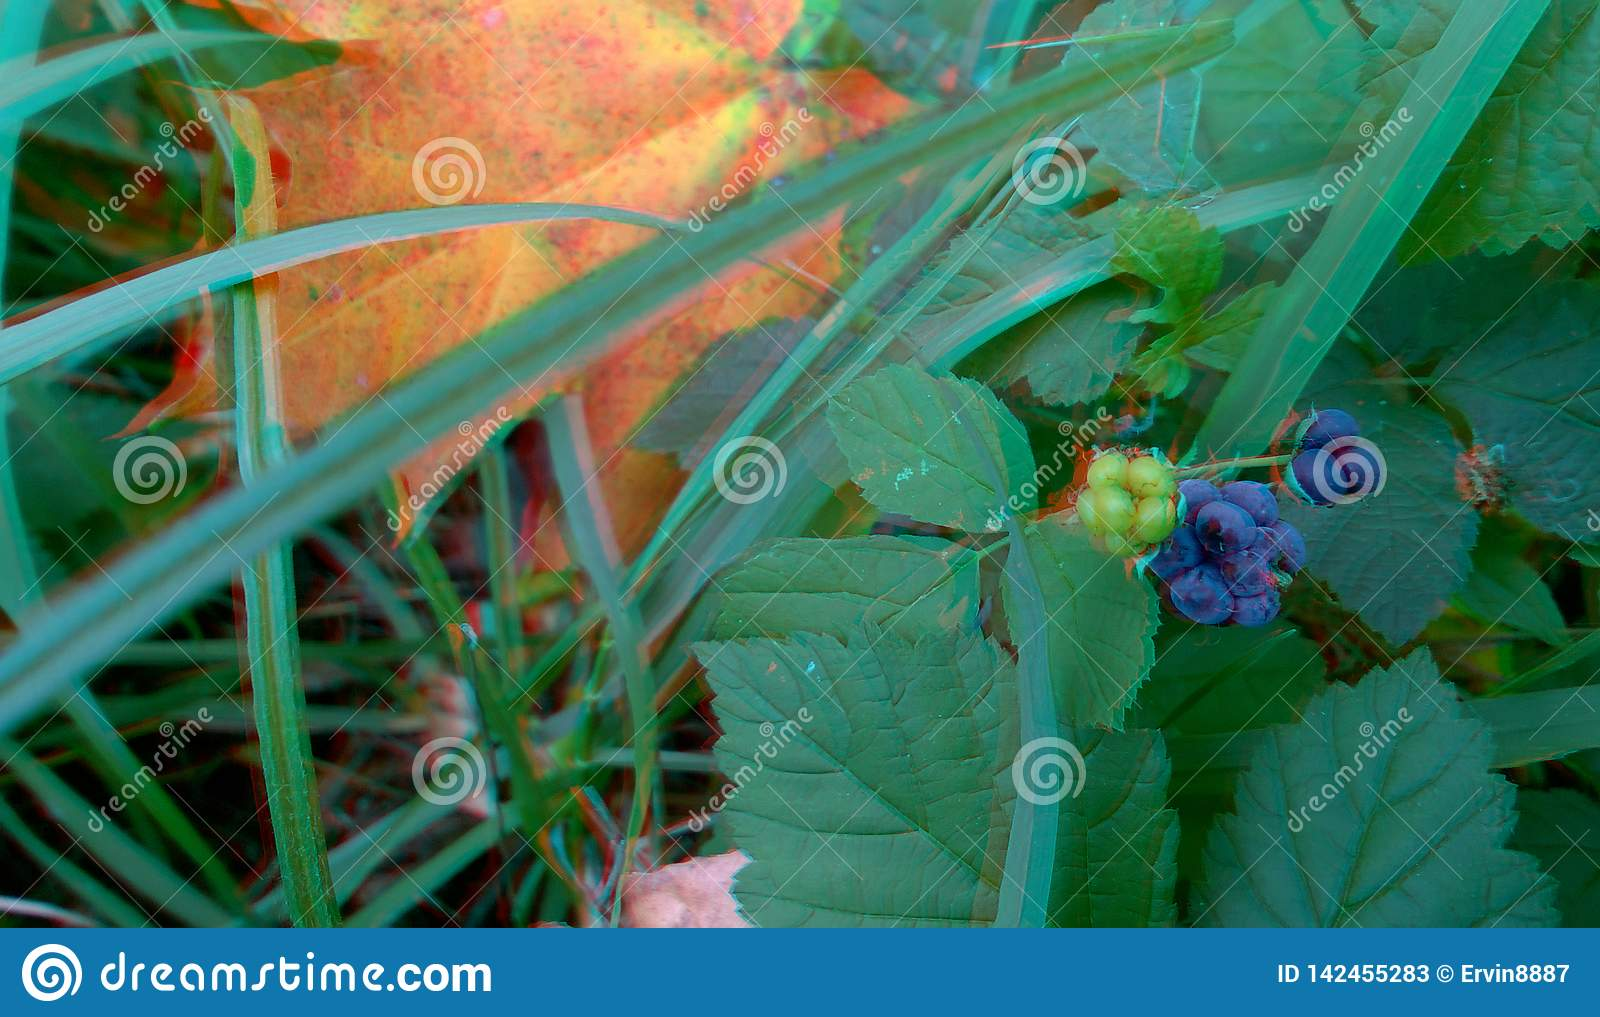 Ripened Wild Blackberry Waiting to be Picked. 3D anaglyph